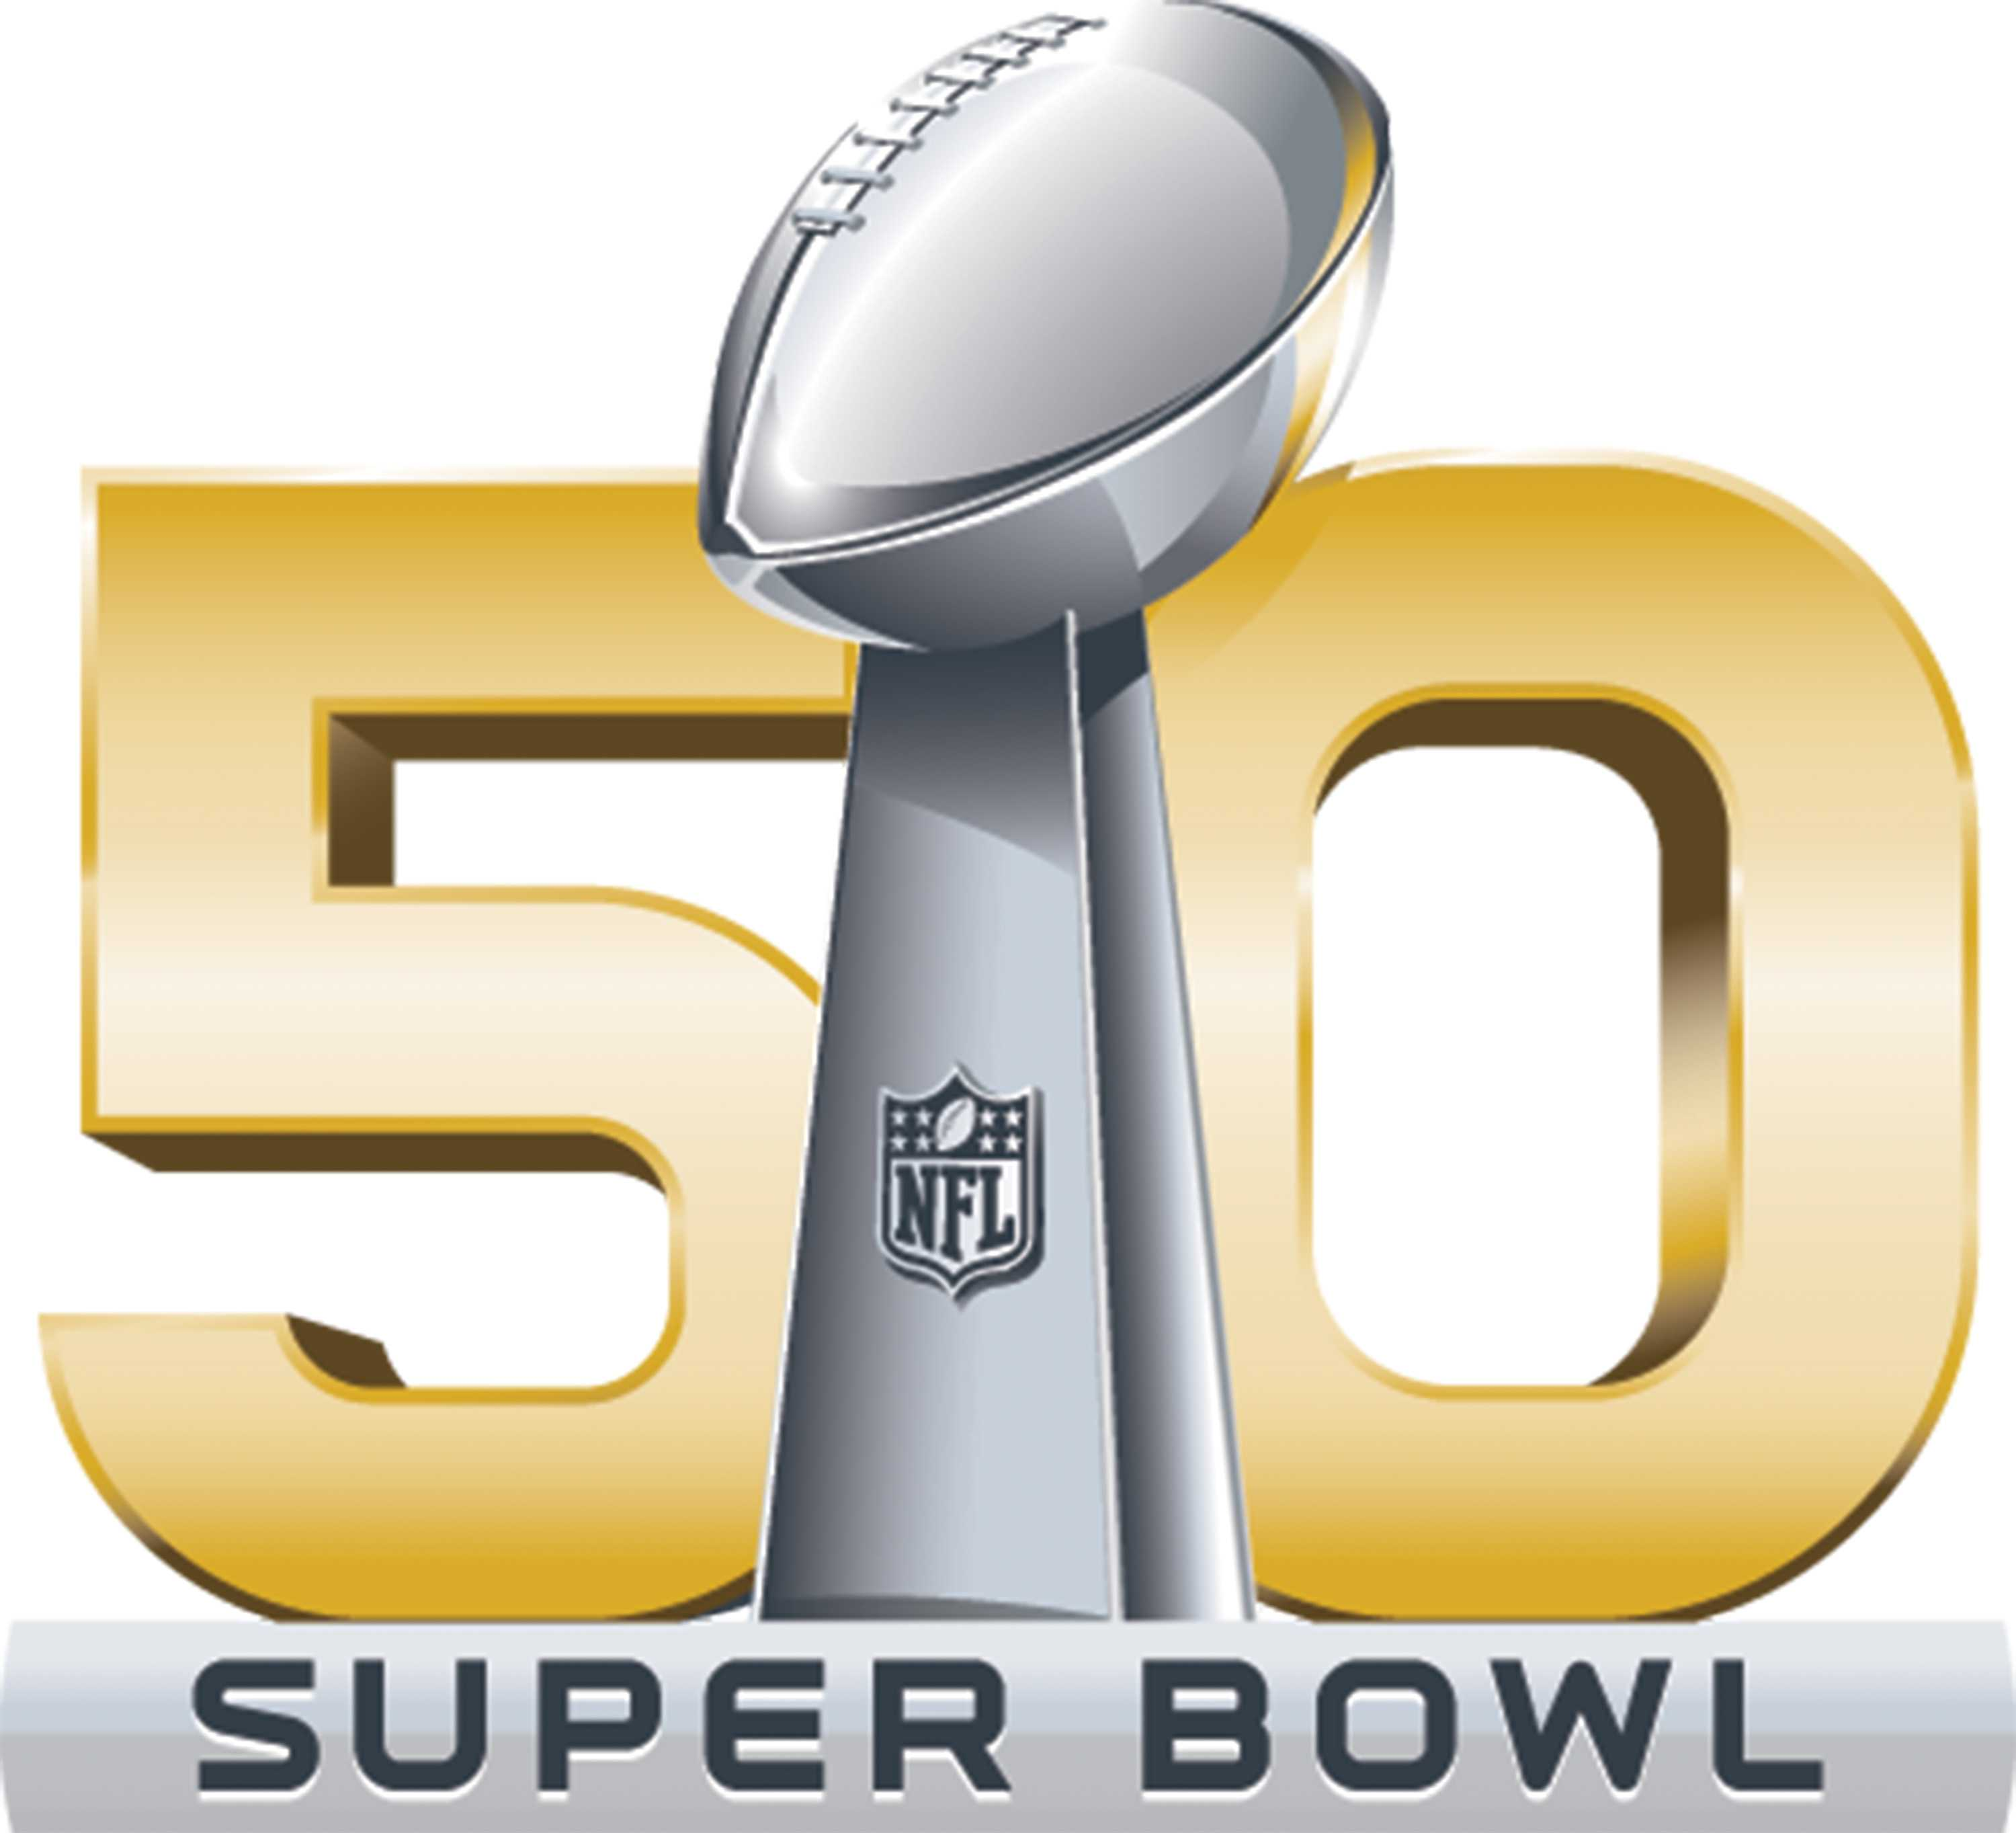 What date is super bowl 50 in Sydney